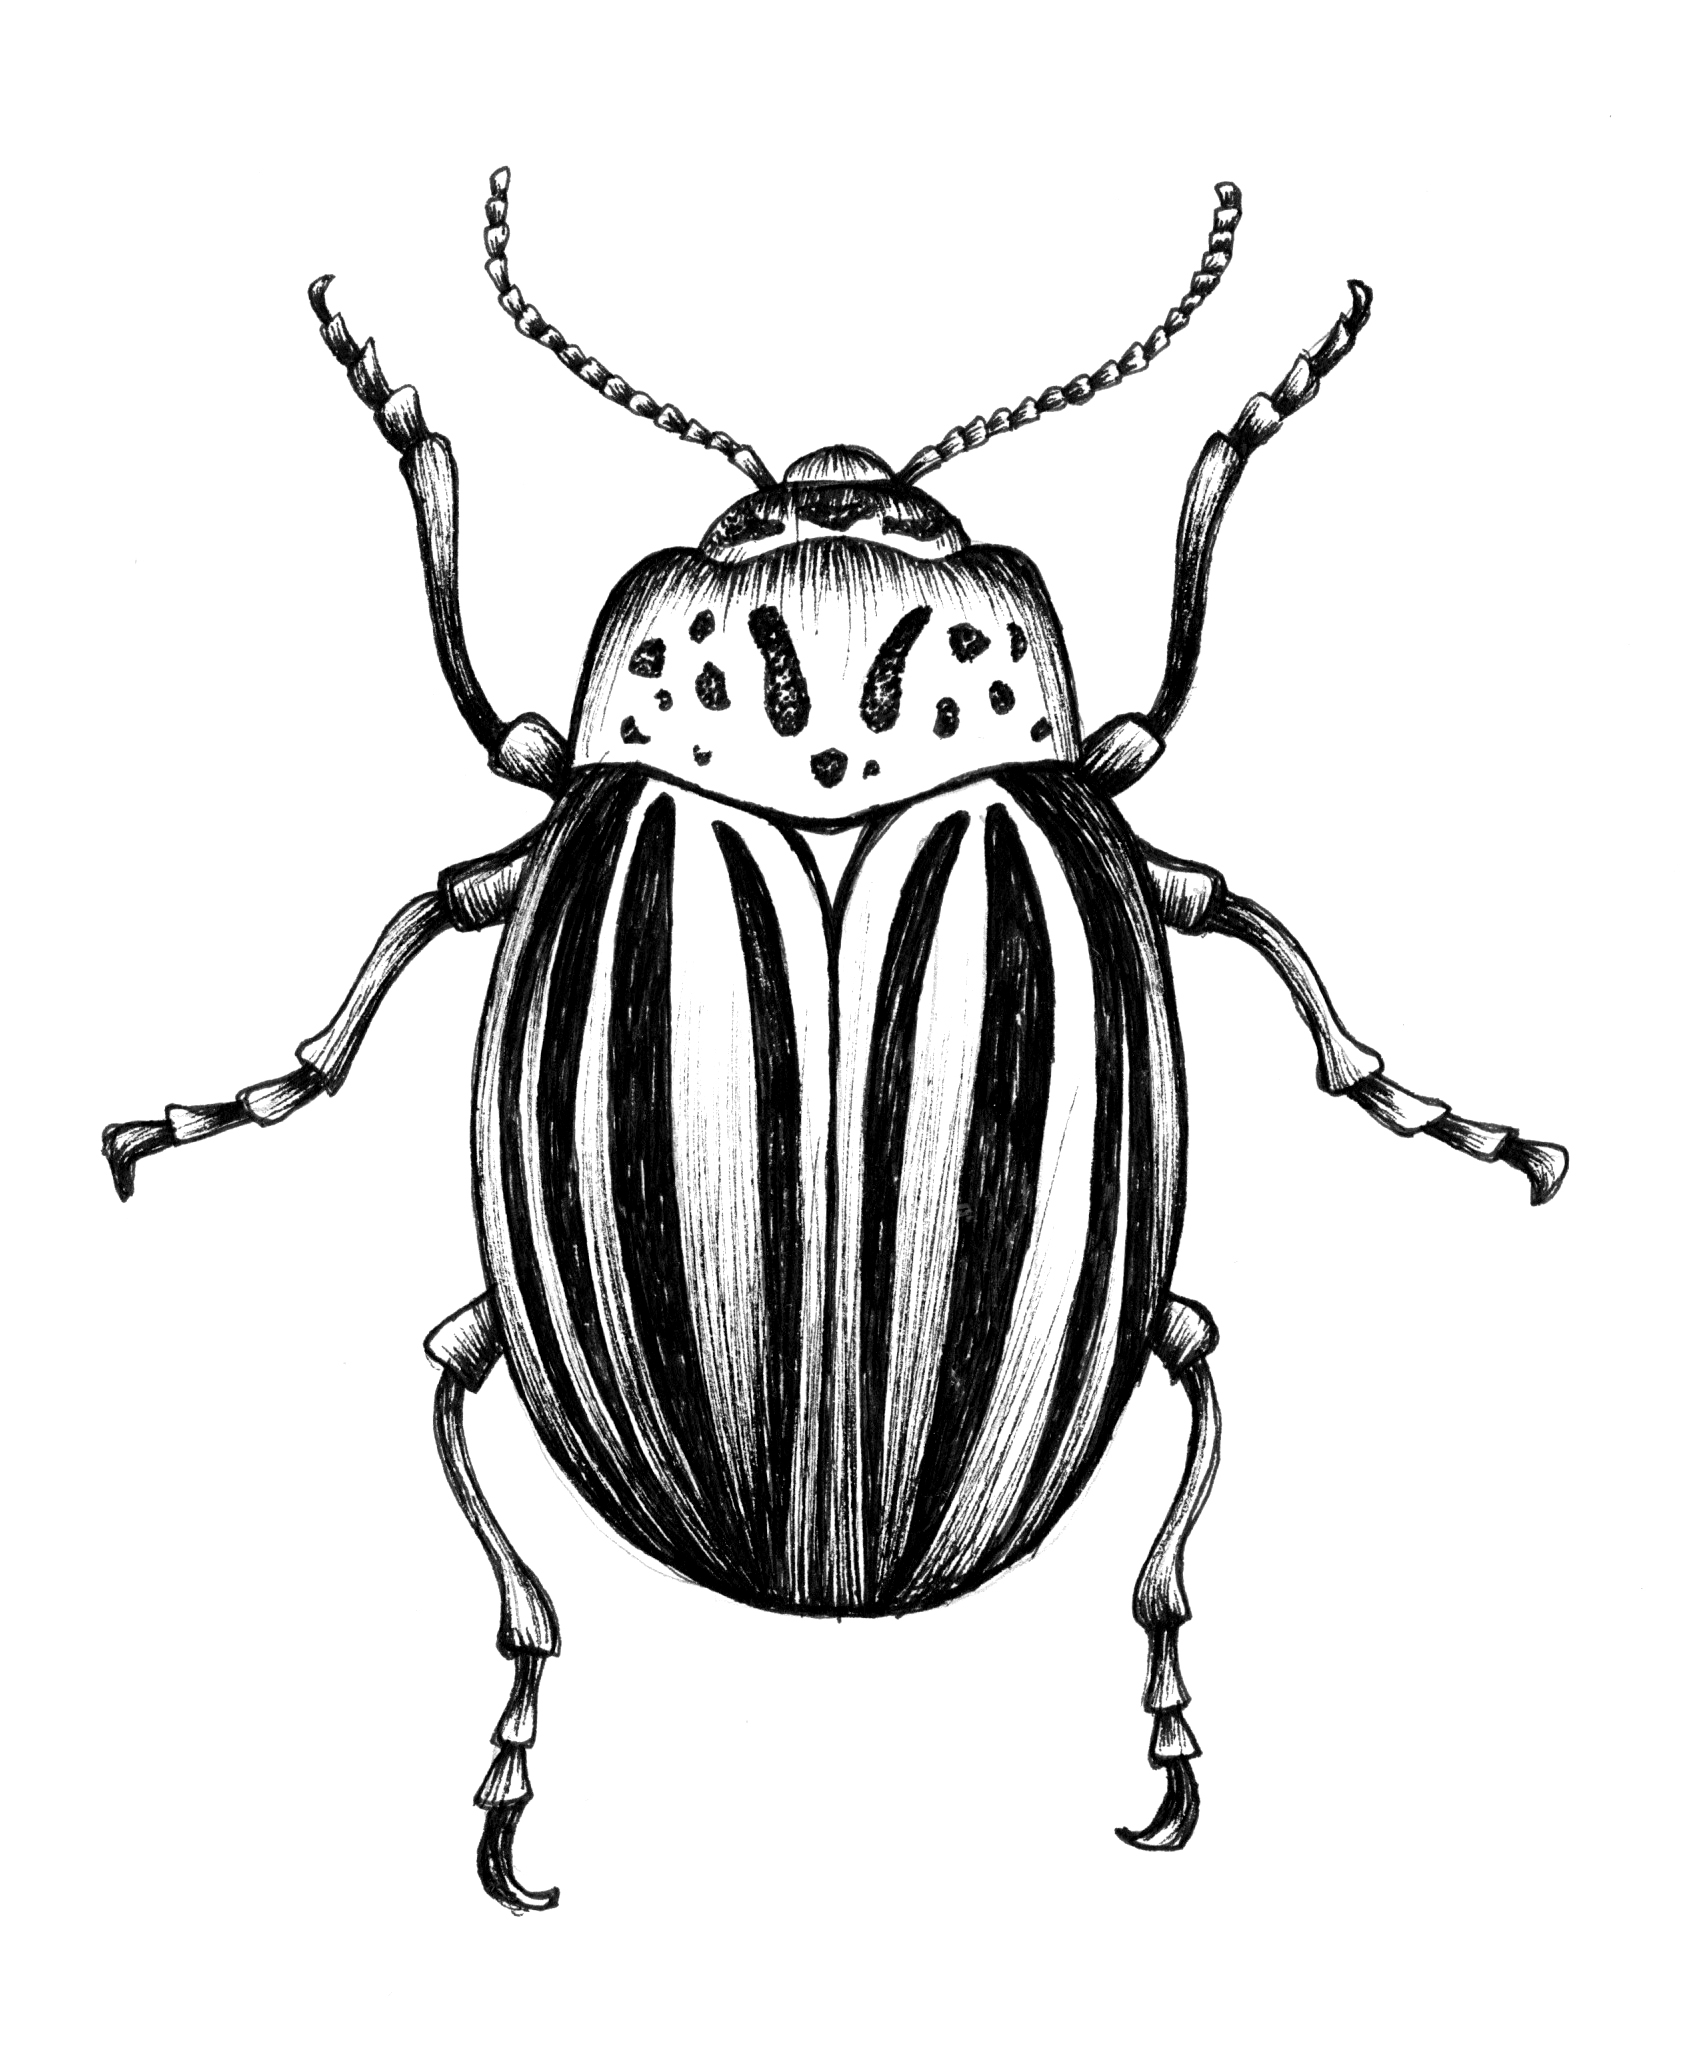 illustration19_potatobug.jpg